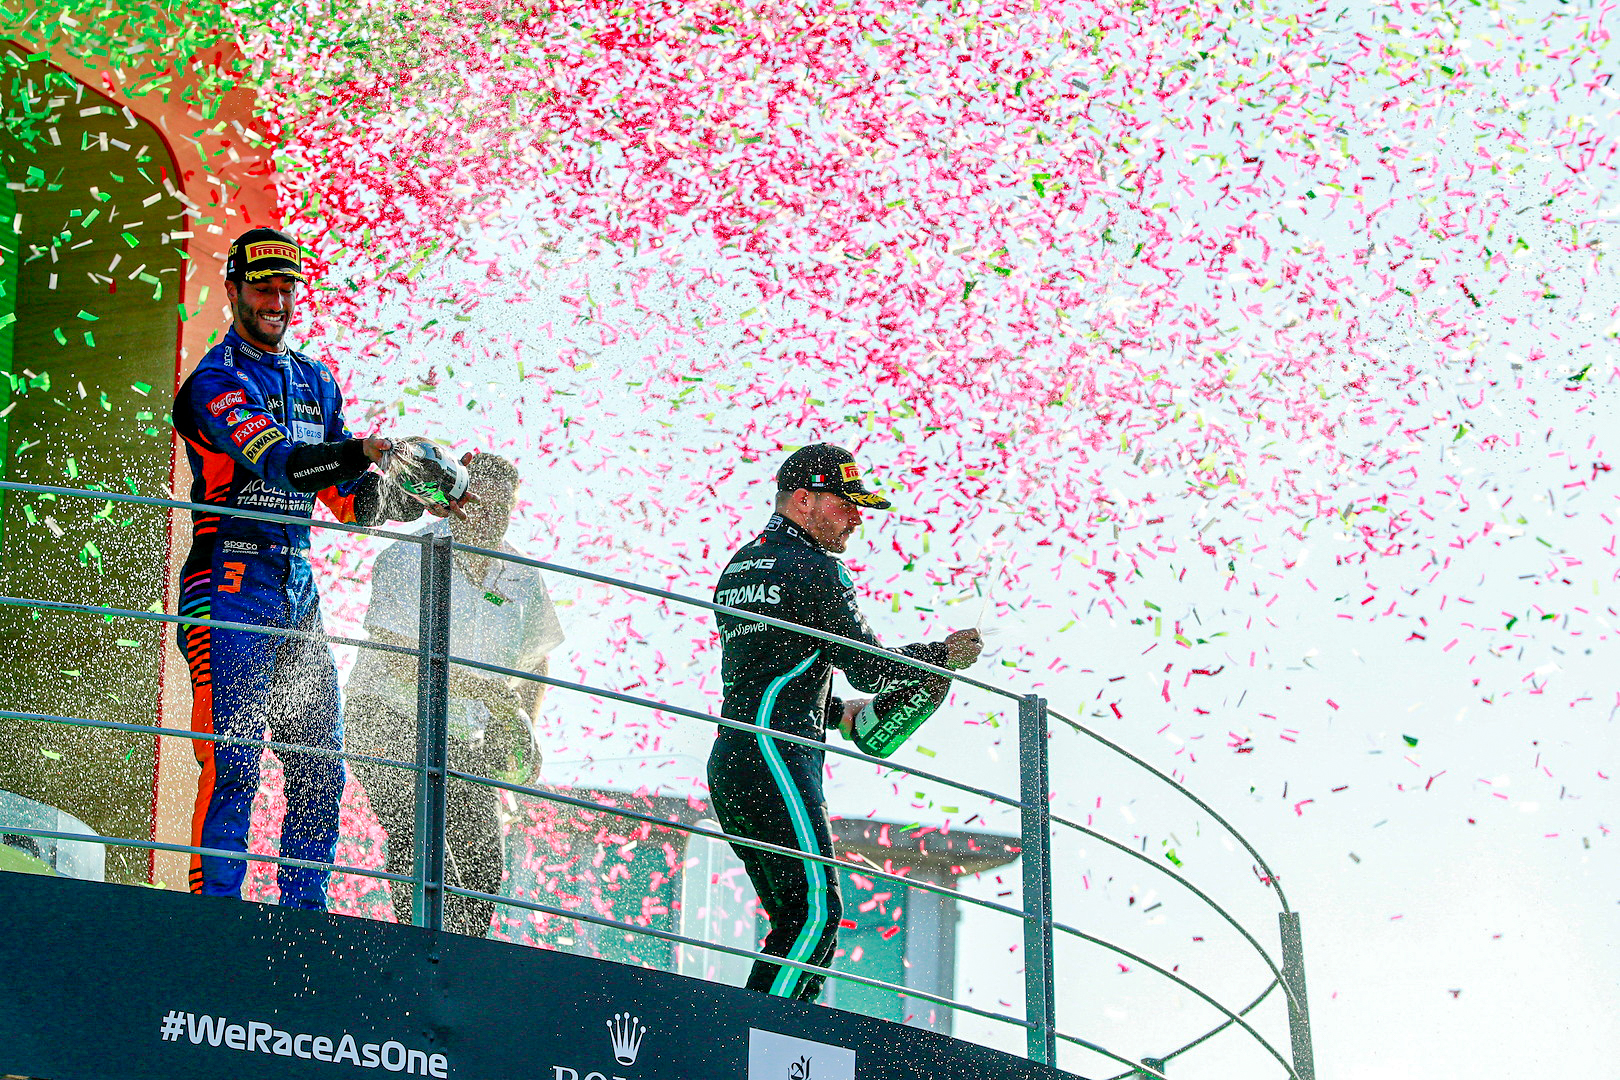 Valtteri claims an impressive podium for the Mercedes-AMG Petronas F1 Team, with Lewis suffering his first DNF of the season after a collision with VER at Turn 2